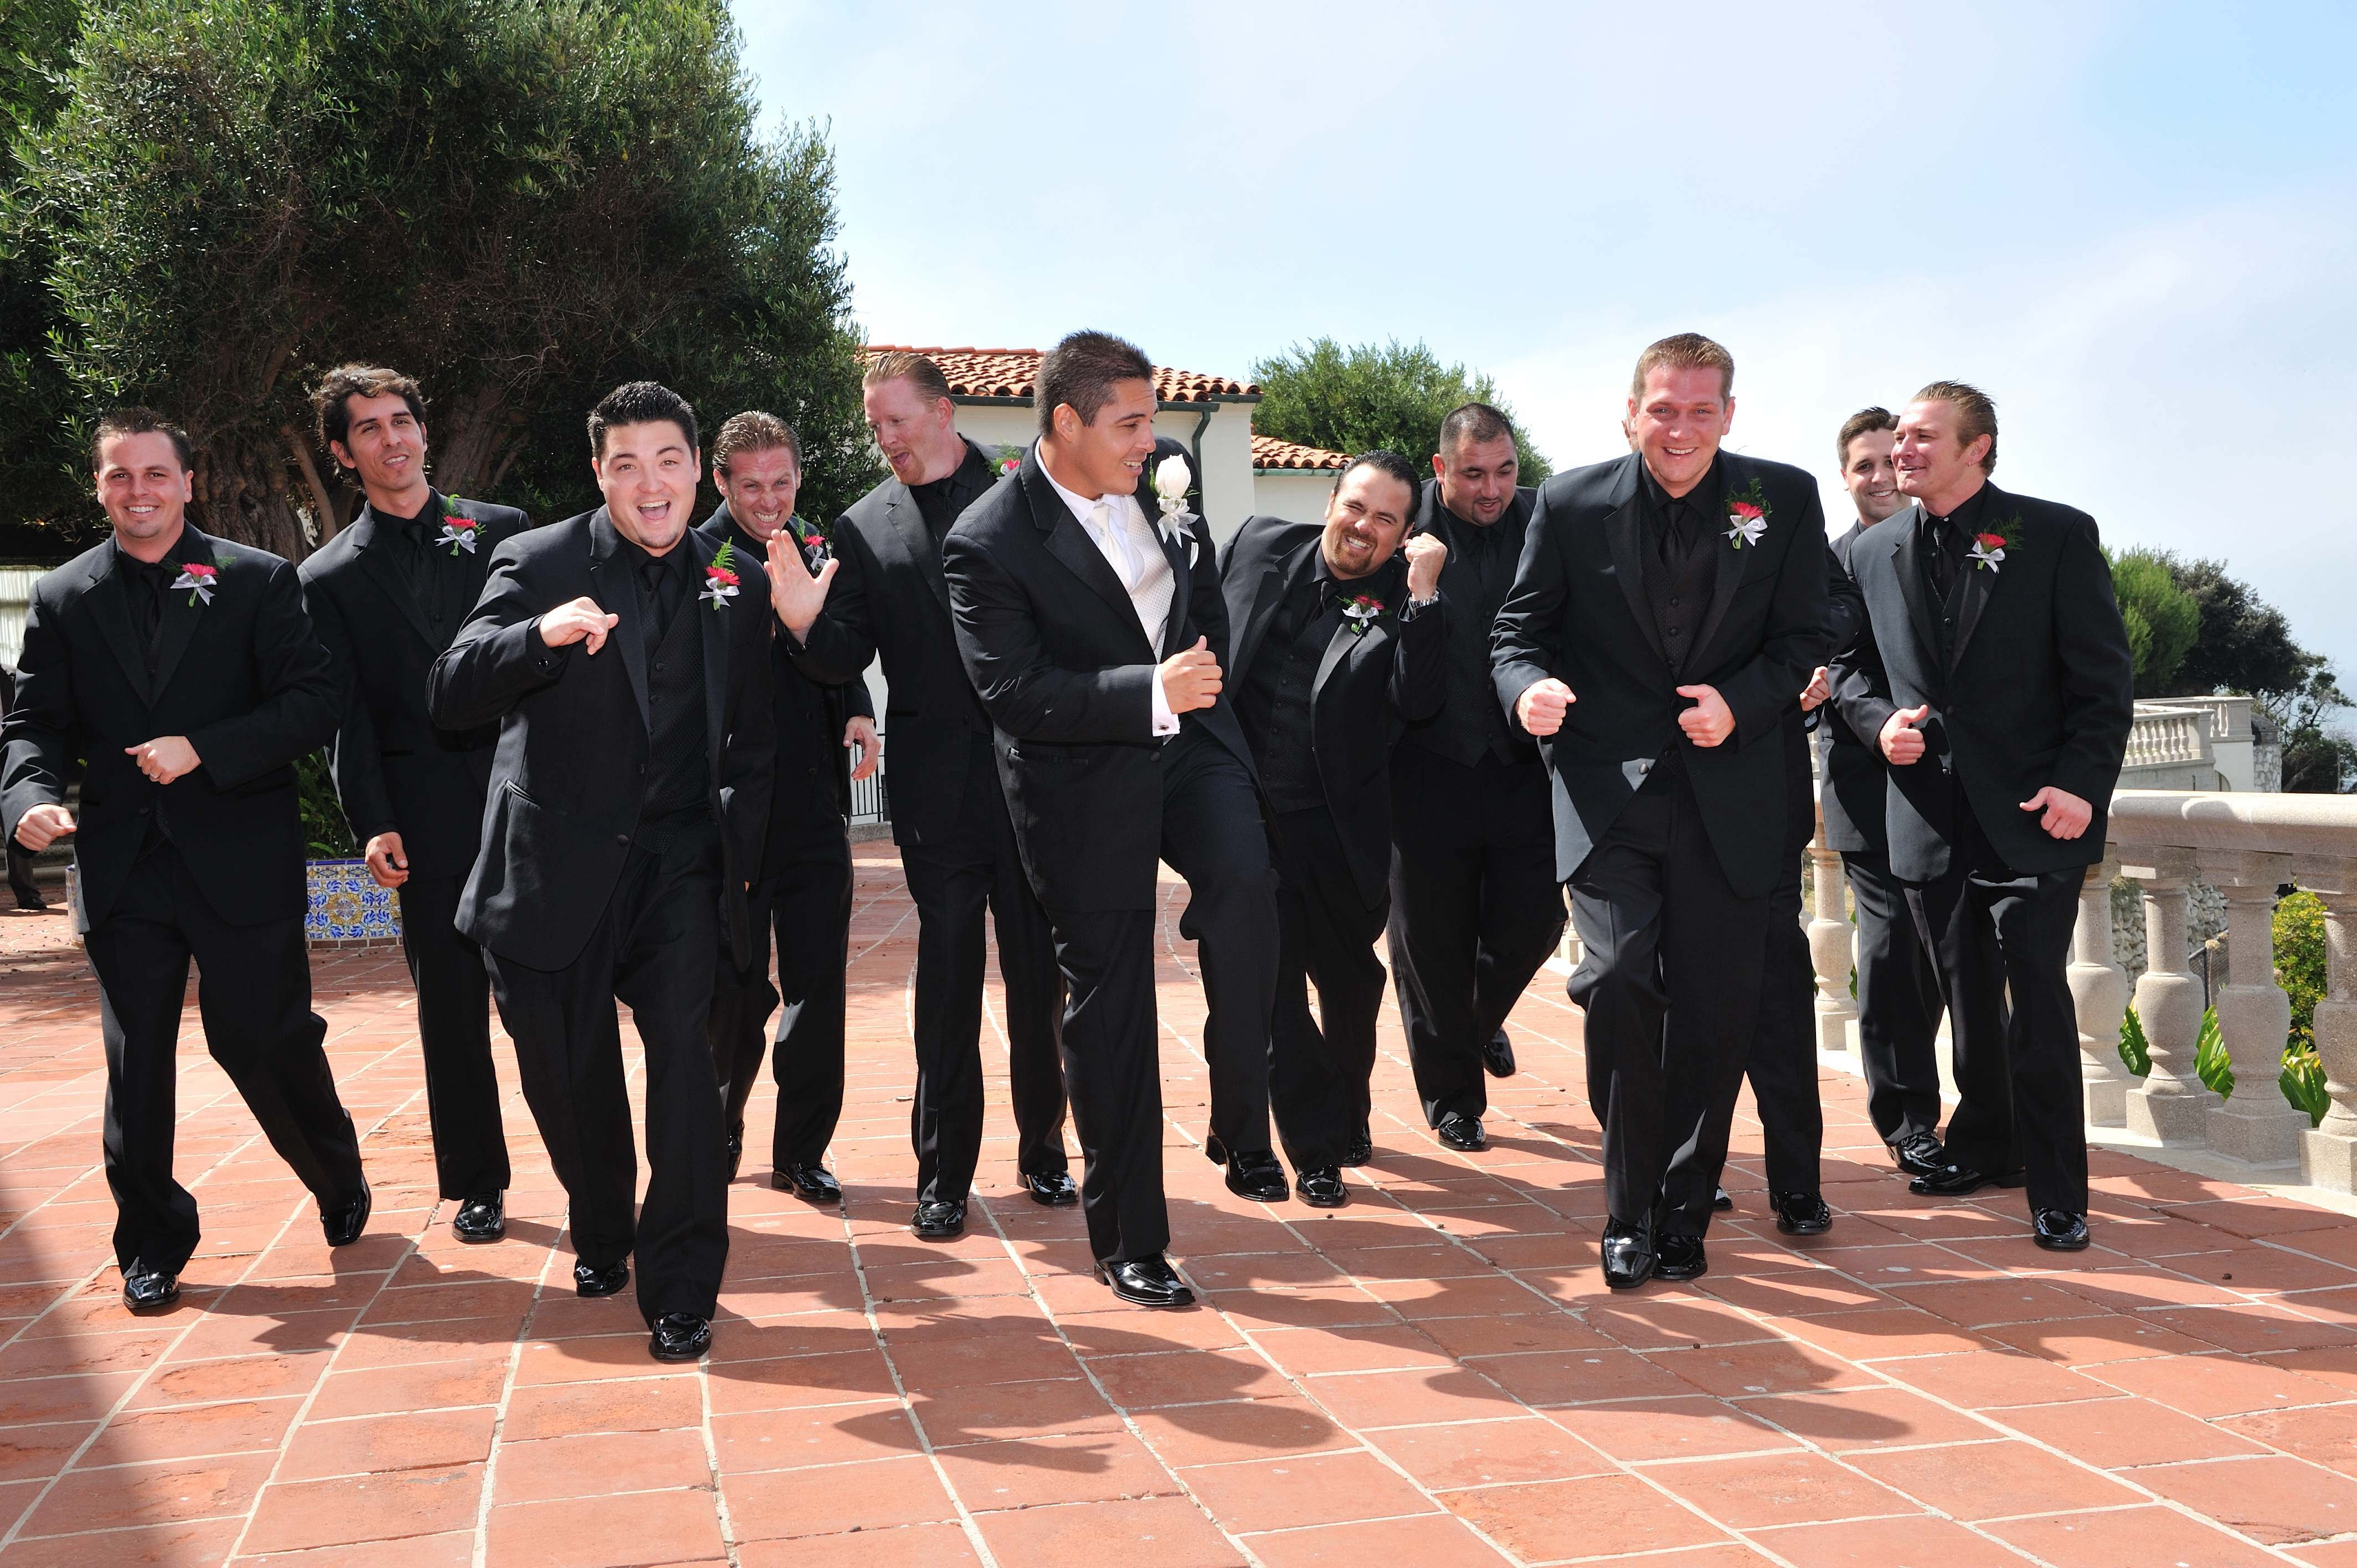 Flowers & Decor, Groomsmen, Flowers, Groom, Ocean, Running